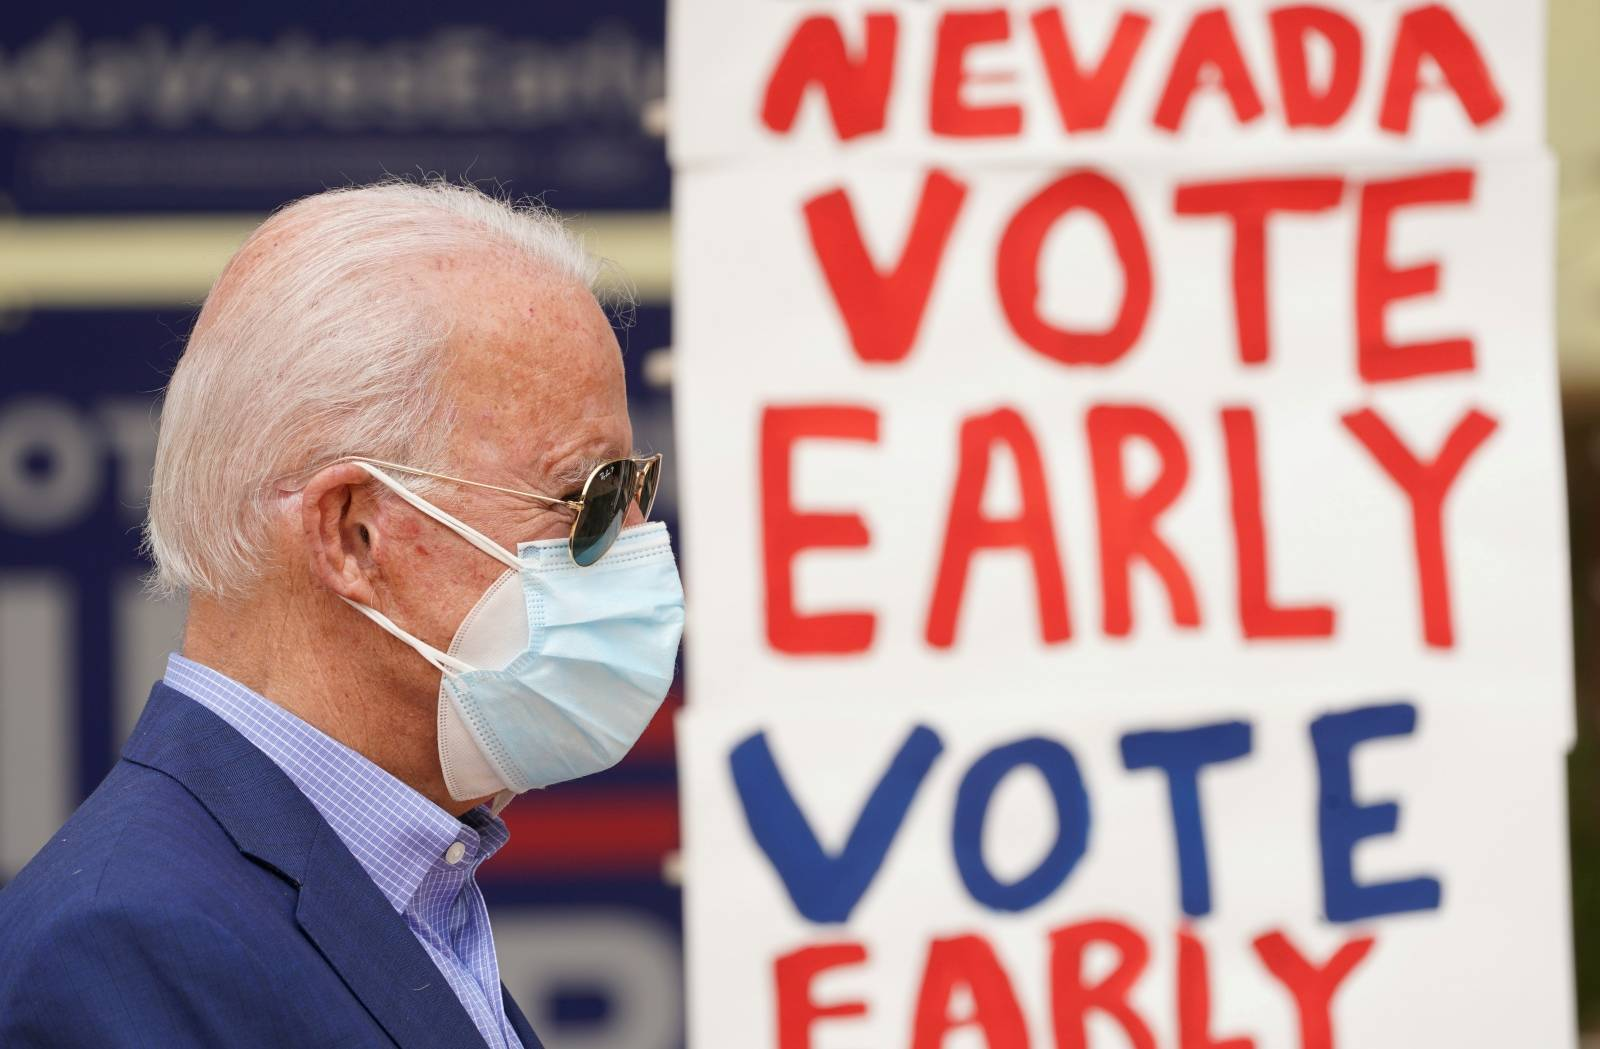 Democratic U.S. presidential nominee Biden campaigns in Las Vegas, Nevada